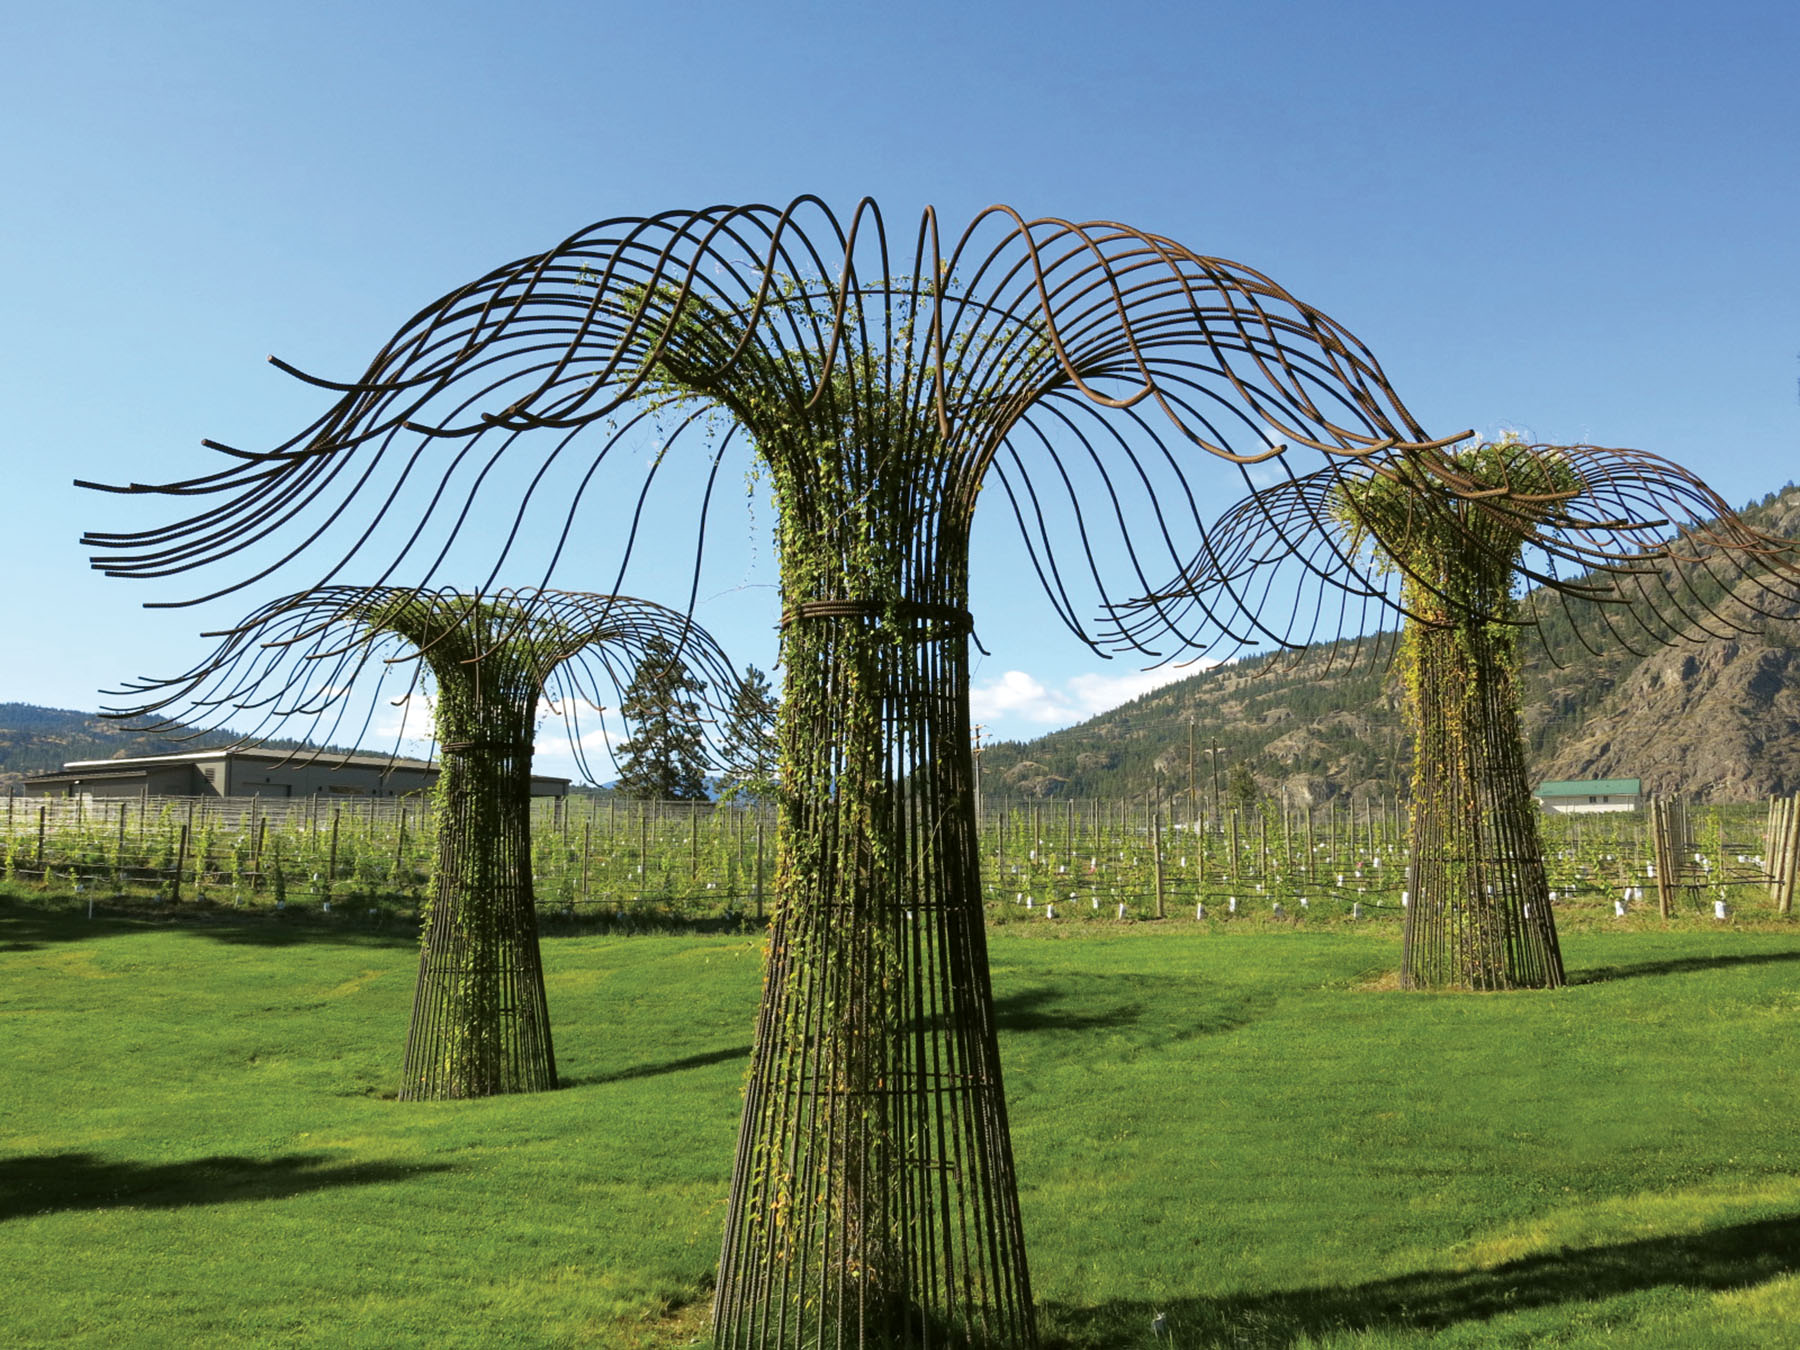 Grid interiors of the steel trees have been planted with silver lace vines